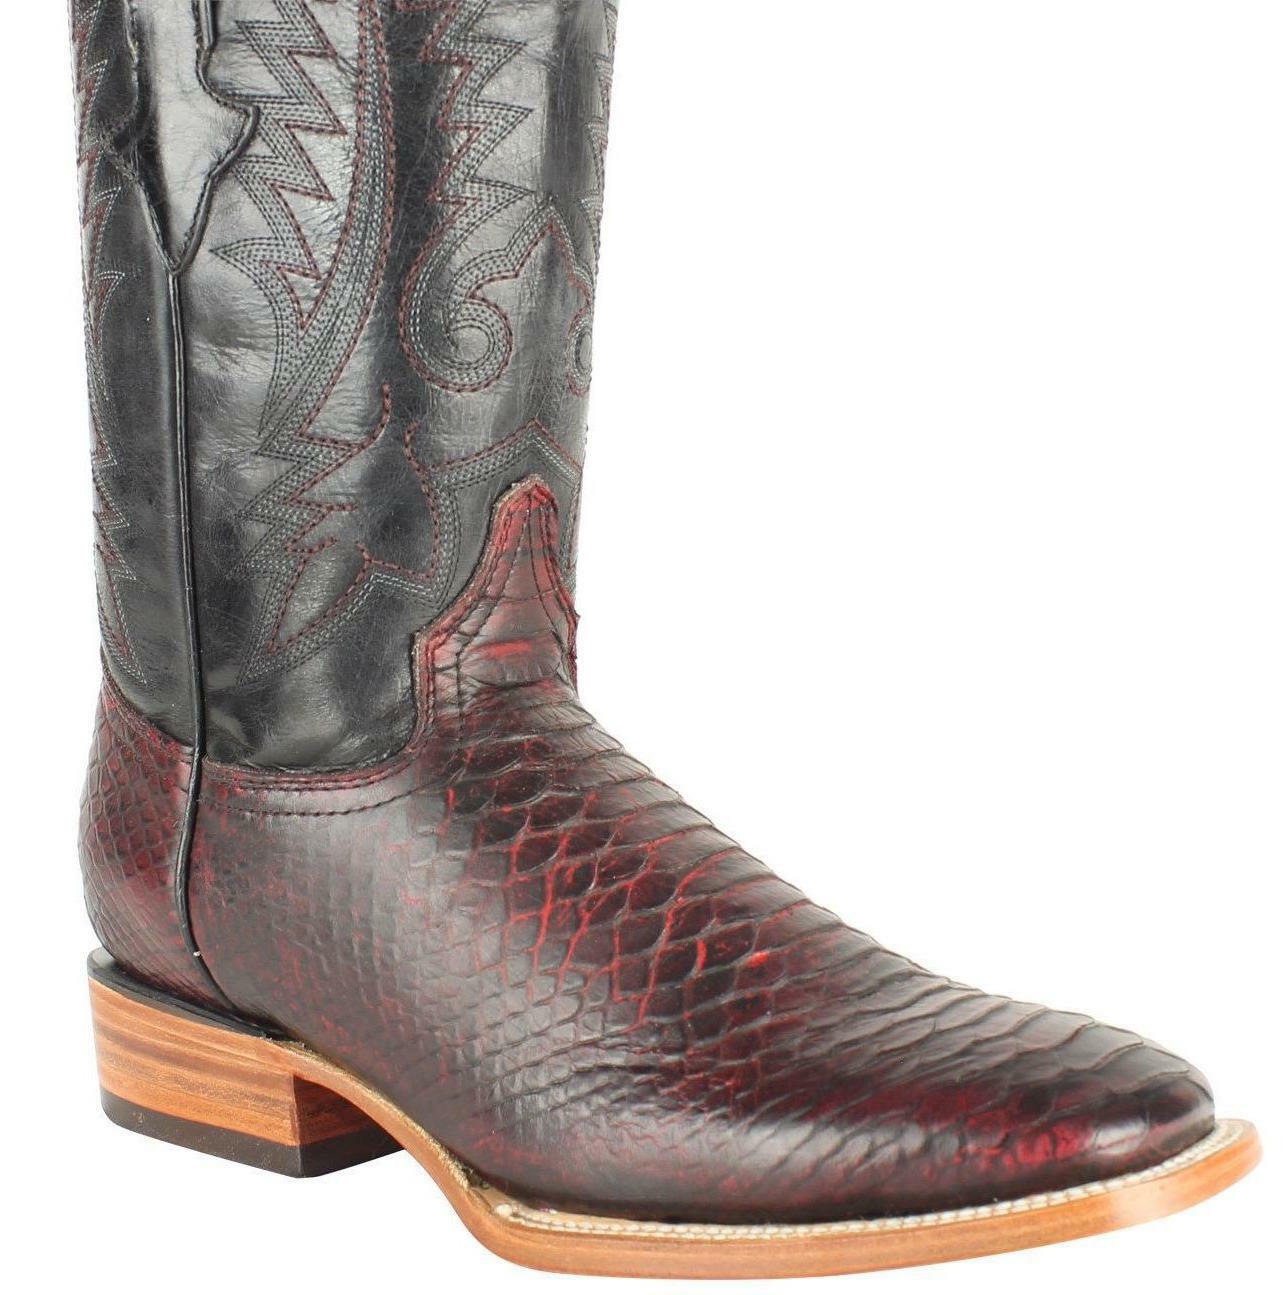 Men's Quincy Python Print Boots Square Toe Handcrafted